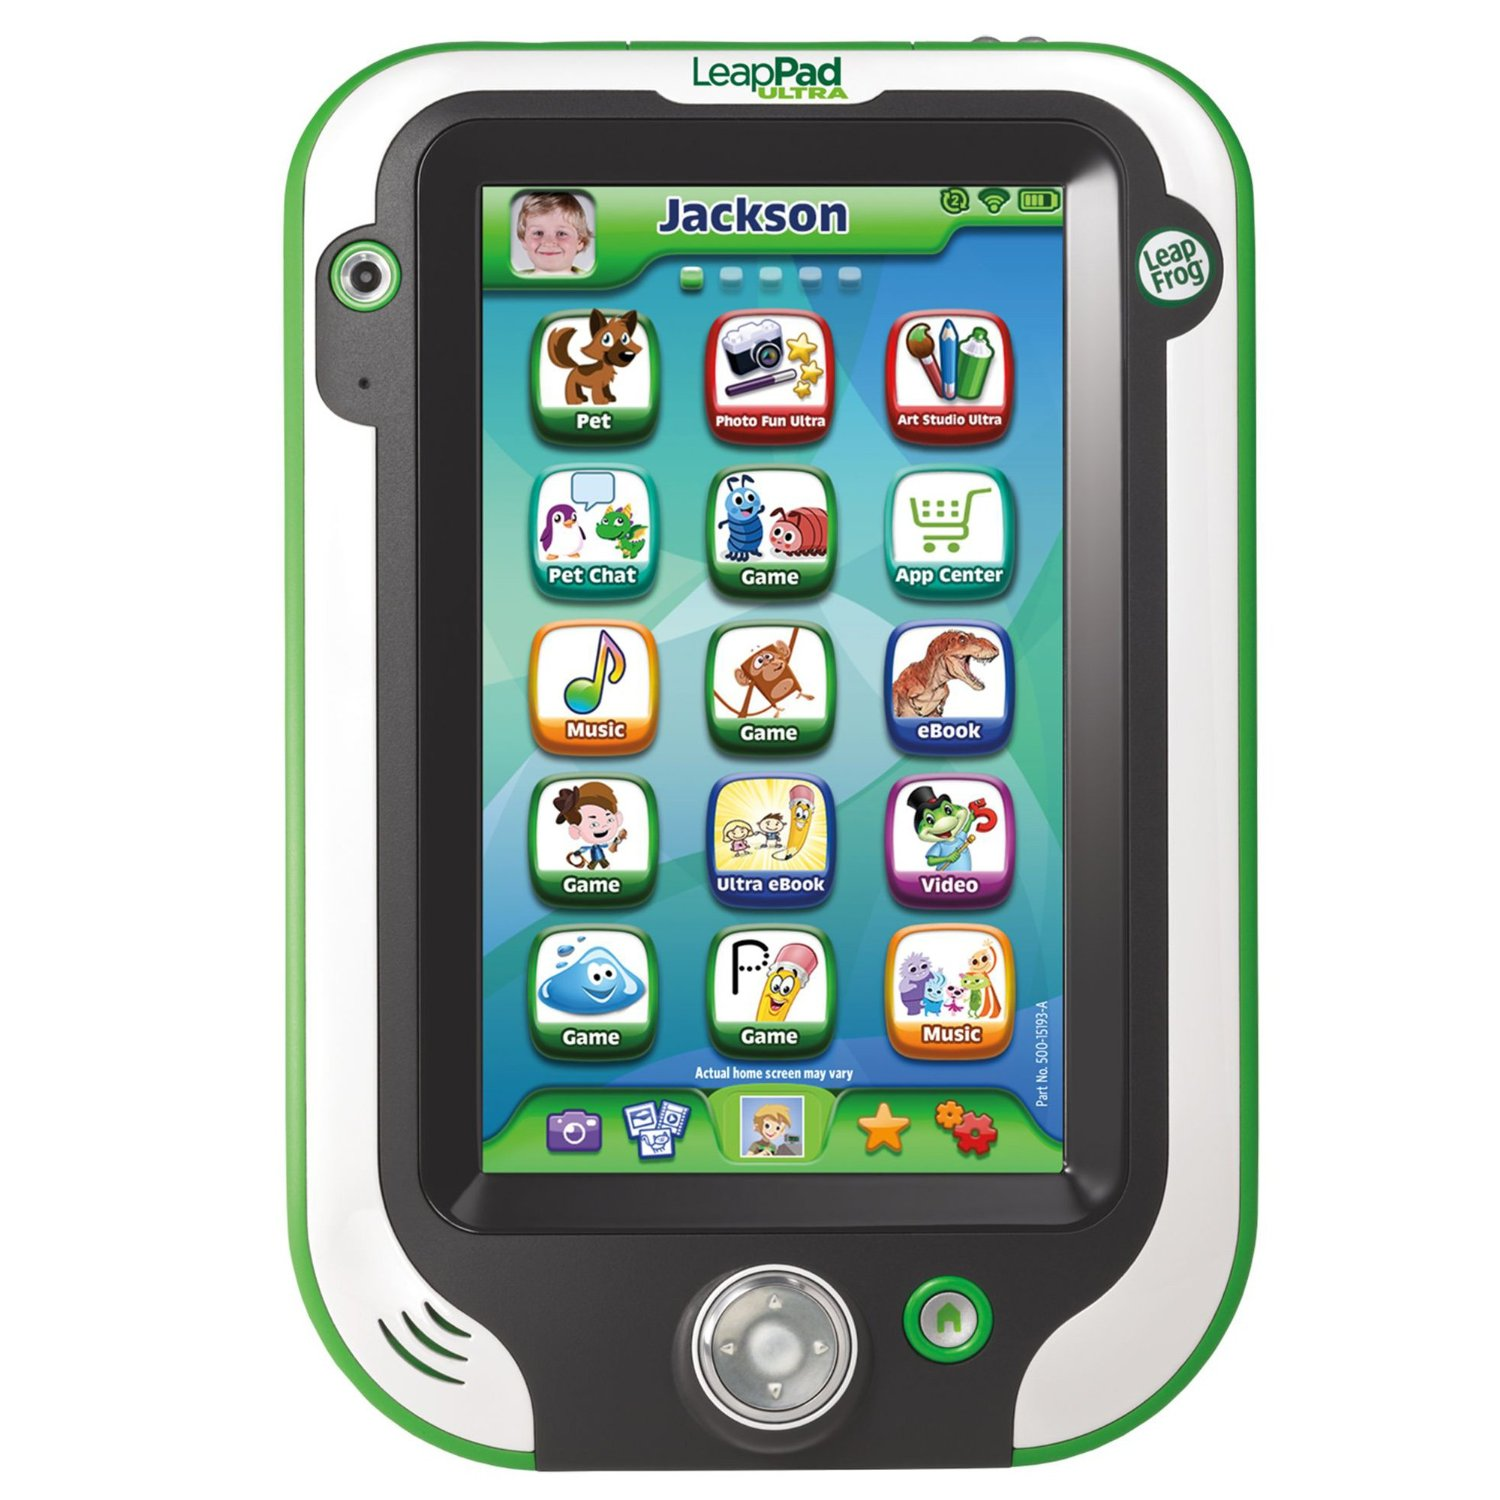 LeapFrog has an extensive collection of promo codes and special deals on their website, but there is no direct link to the page. You have to do a Google search to find it. Once you do, you will be privy to promotional offers like $10 off and free shipping on bundled products, $4 off select books, free shipping on orders over $60 and lots more.